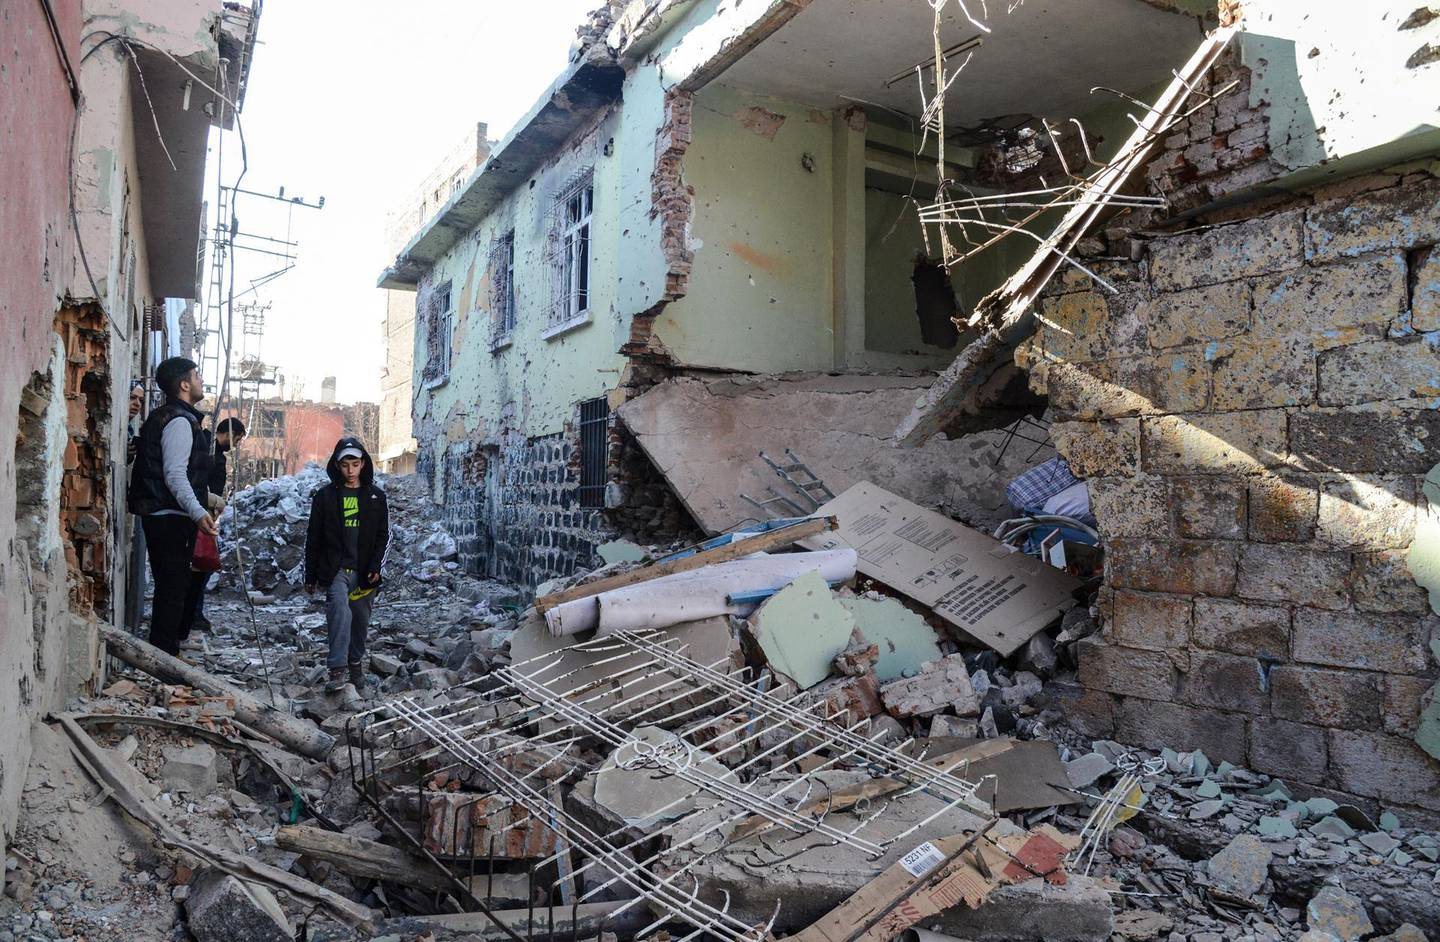 Boys walk among rubble and damaged buildings in the Sur district in Diyarbakir on December 11, 2015. A policeman was killed on December 9, 2015 by sniper fire as he tried to defuse an explosive device in the Sur district of Diyarbakir province, which has been under military curfew for eight days. Turkey has been waging a relentless offensive against PKK strongholds in the southeast of the country and in northern Iraq following the collapse in July of a two-year truce with rebels.     / AFP PHOTO / ILYAS AKENGIN